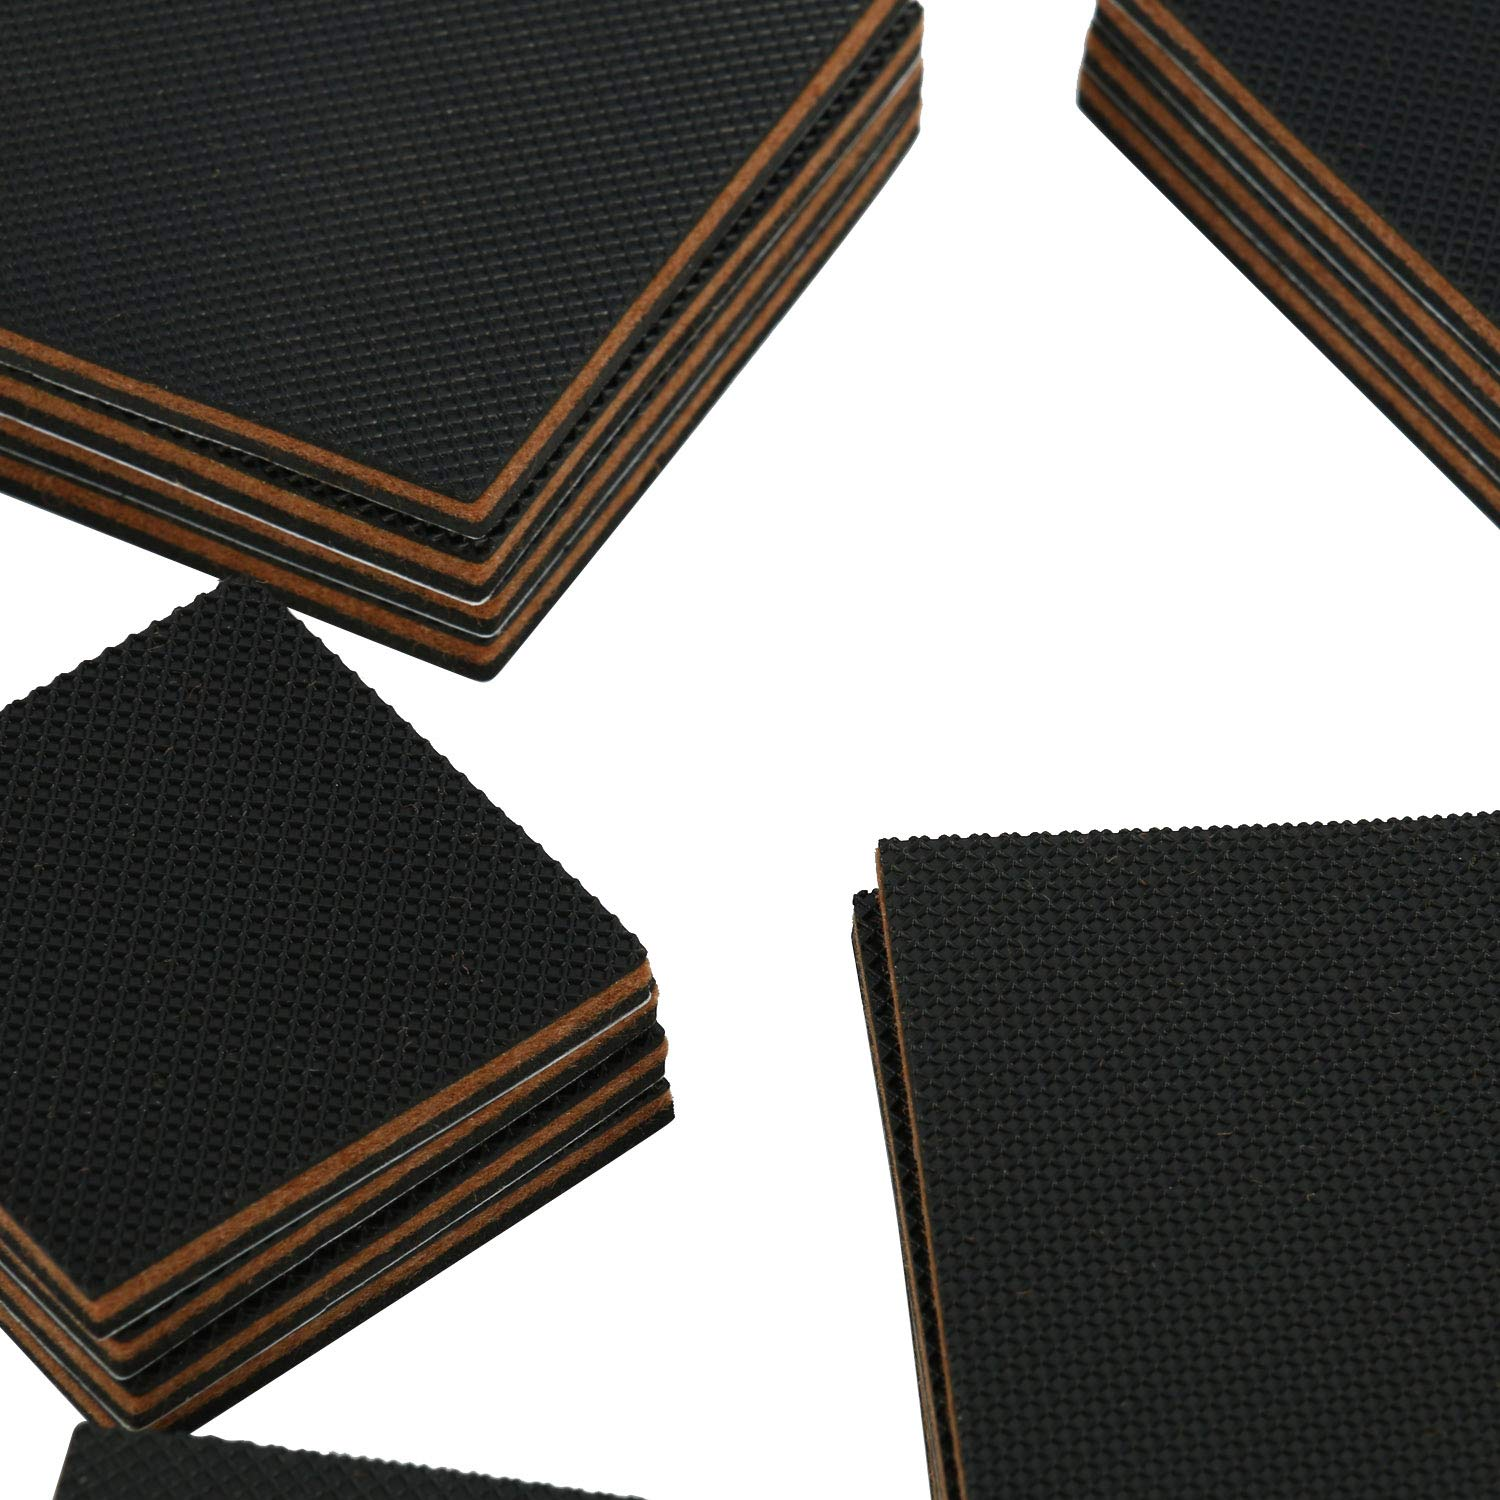 Self Adhesive Rubber Feet Non Skid for Furniture Legs EVA Layer Added Homend Non Slip Furniture Pads 32 Pack Furniture Grippers 24pcs 3 Square + 8pcs 1 Round